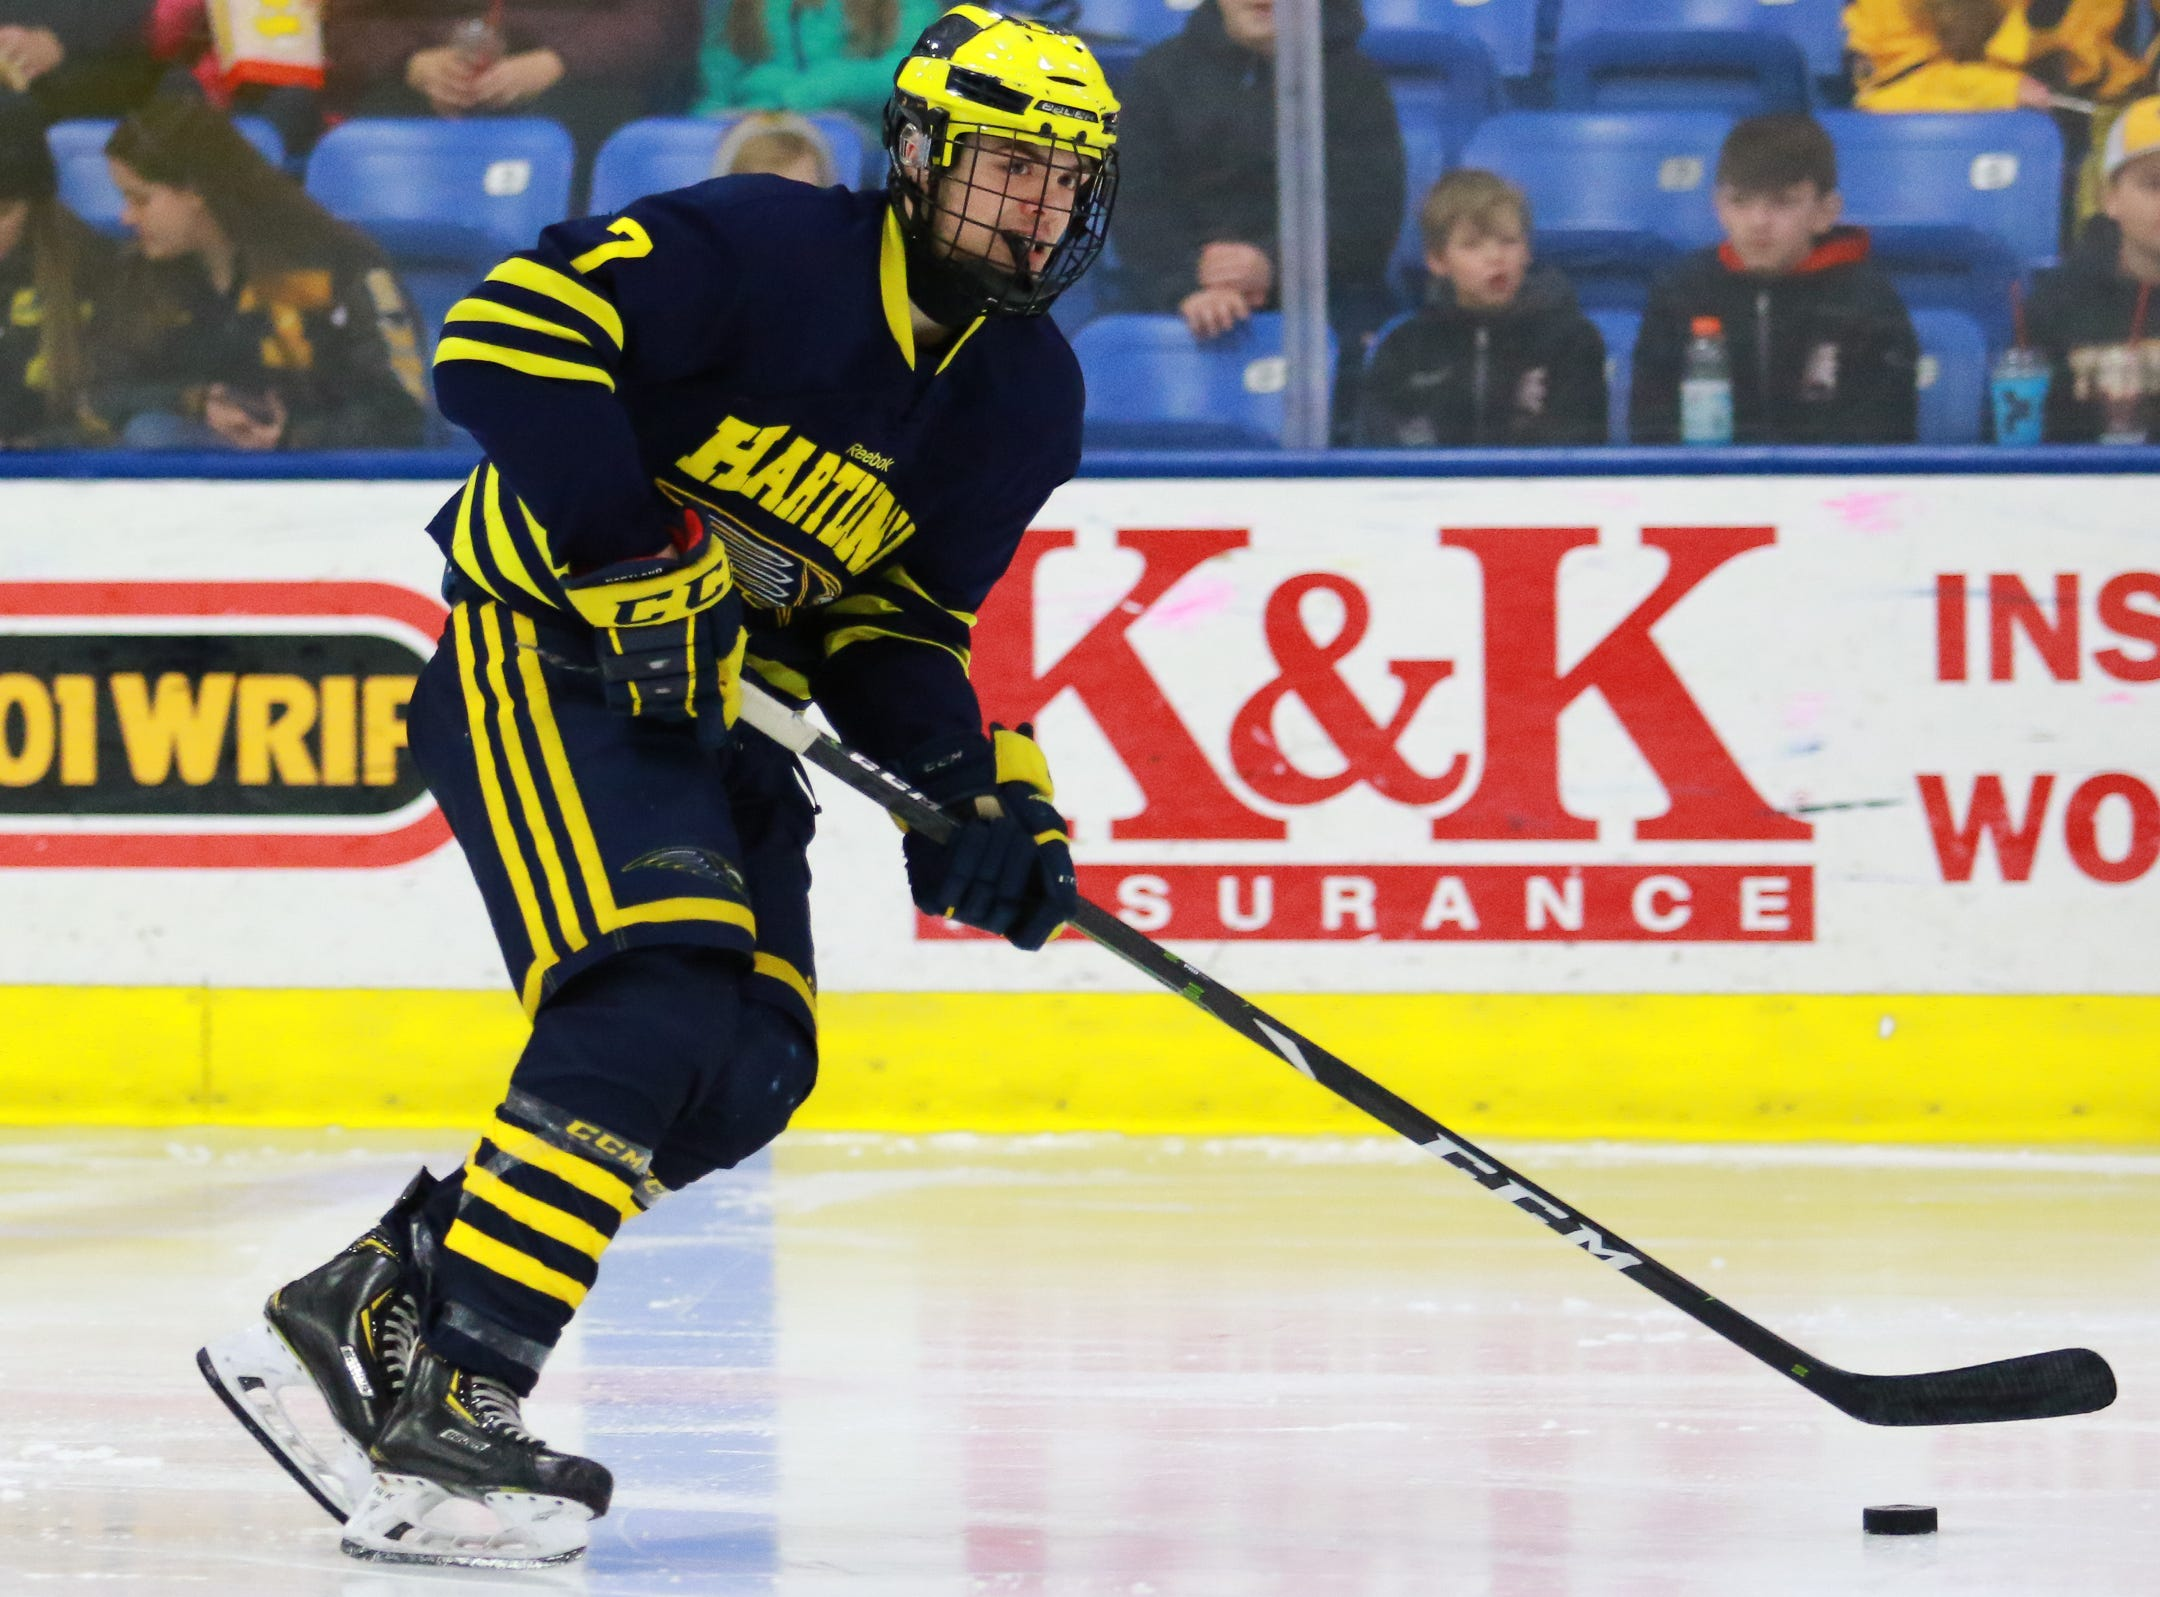 Hartland defenseman Grant Briggs carries the puck in a 4-0 victory over Trenton in the state Division 2 championship hockey game on Saturday, March 9, 2019 at USA Hockey Arena.